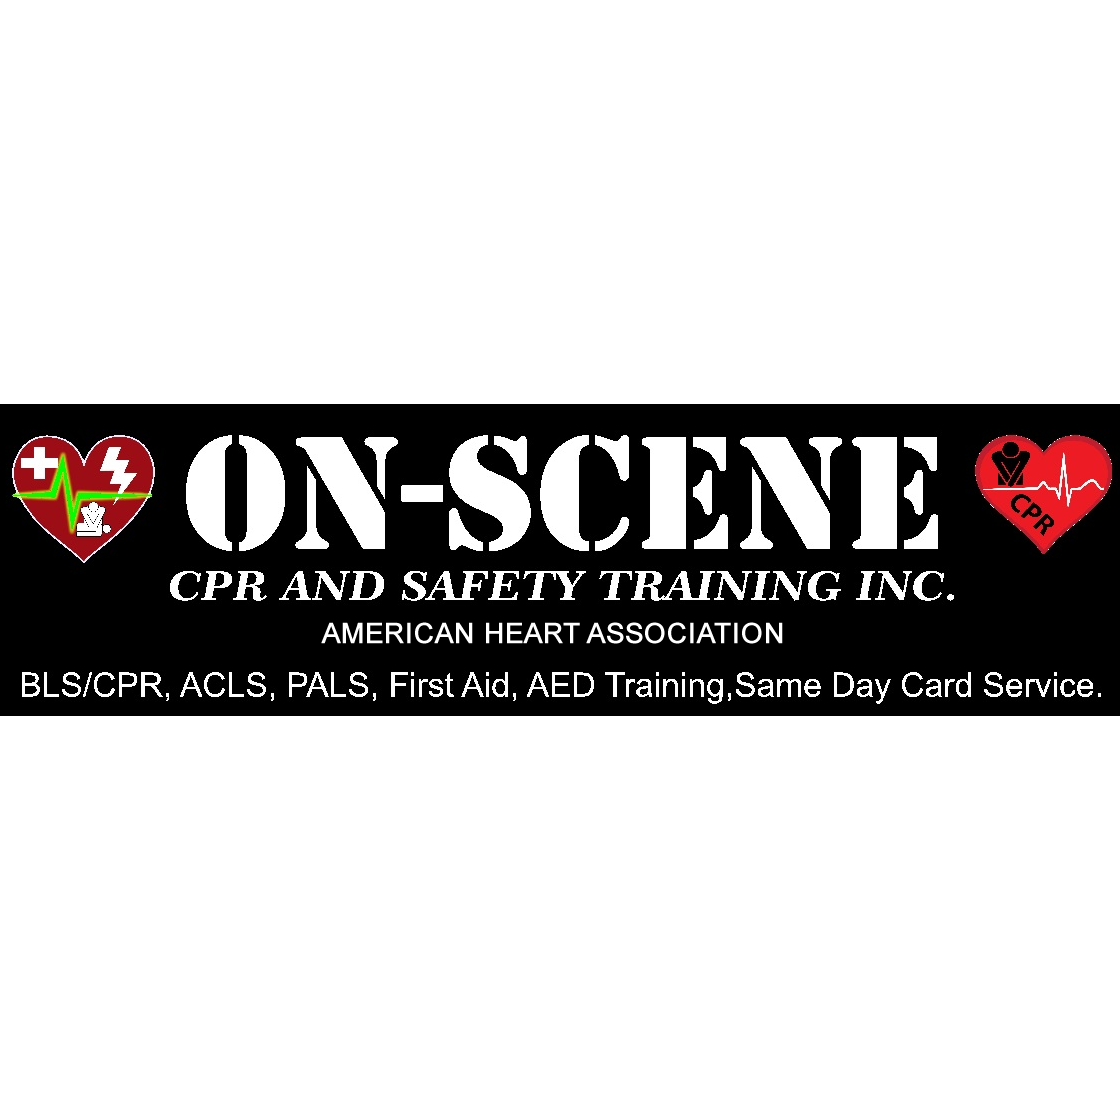 On Scene CPR & Safety Training Inc.